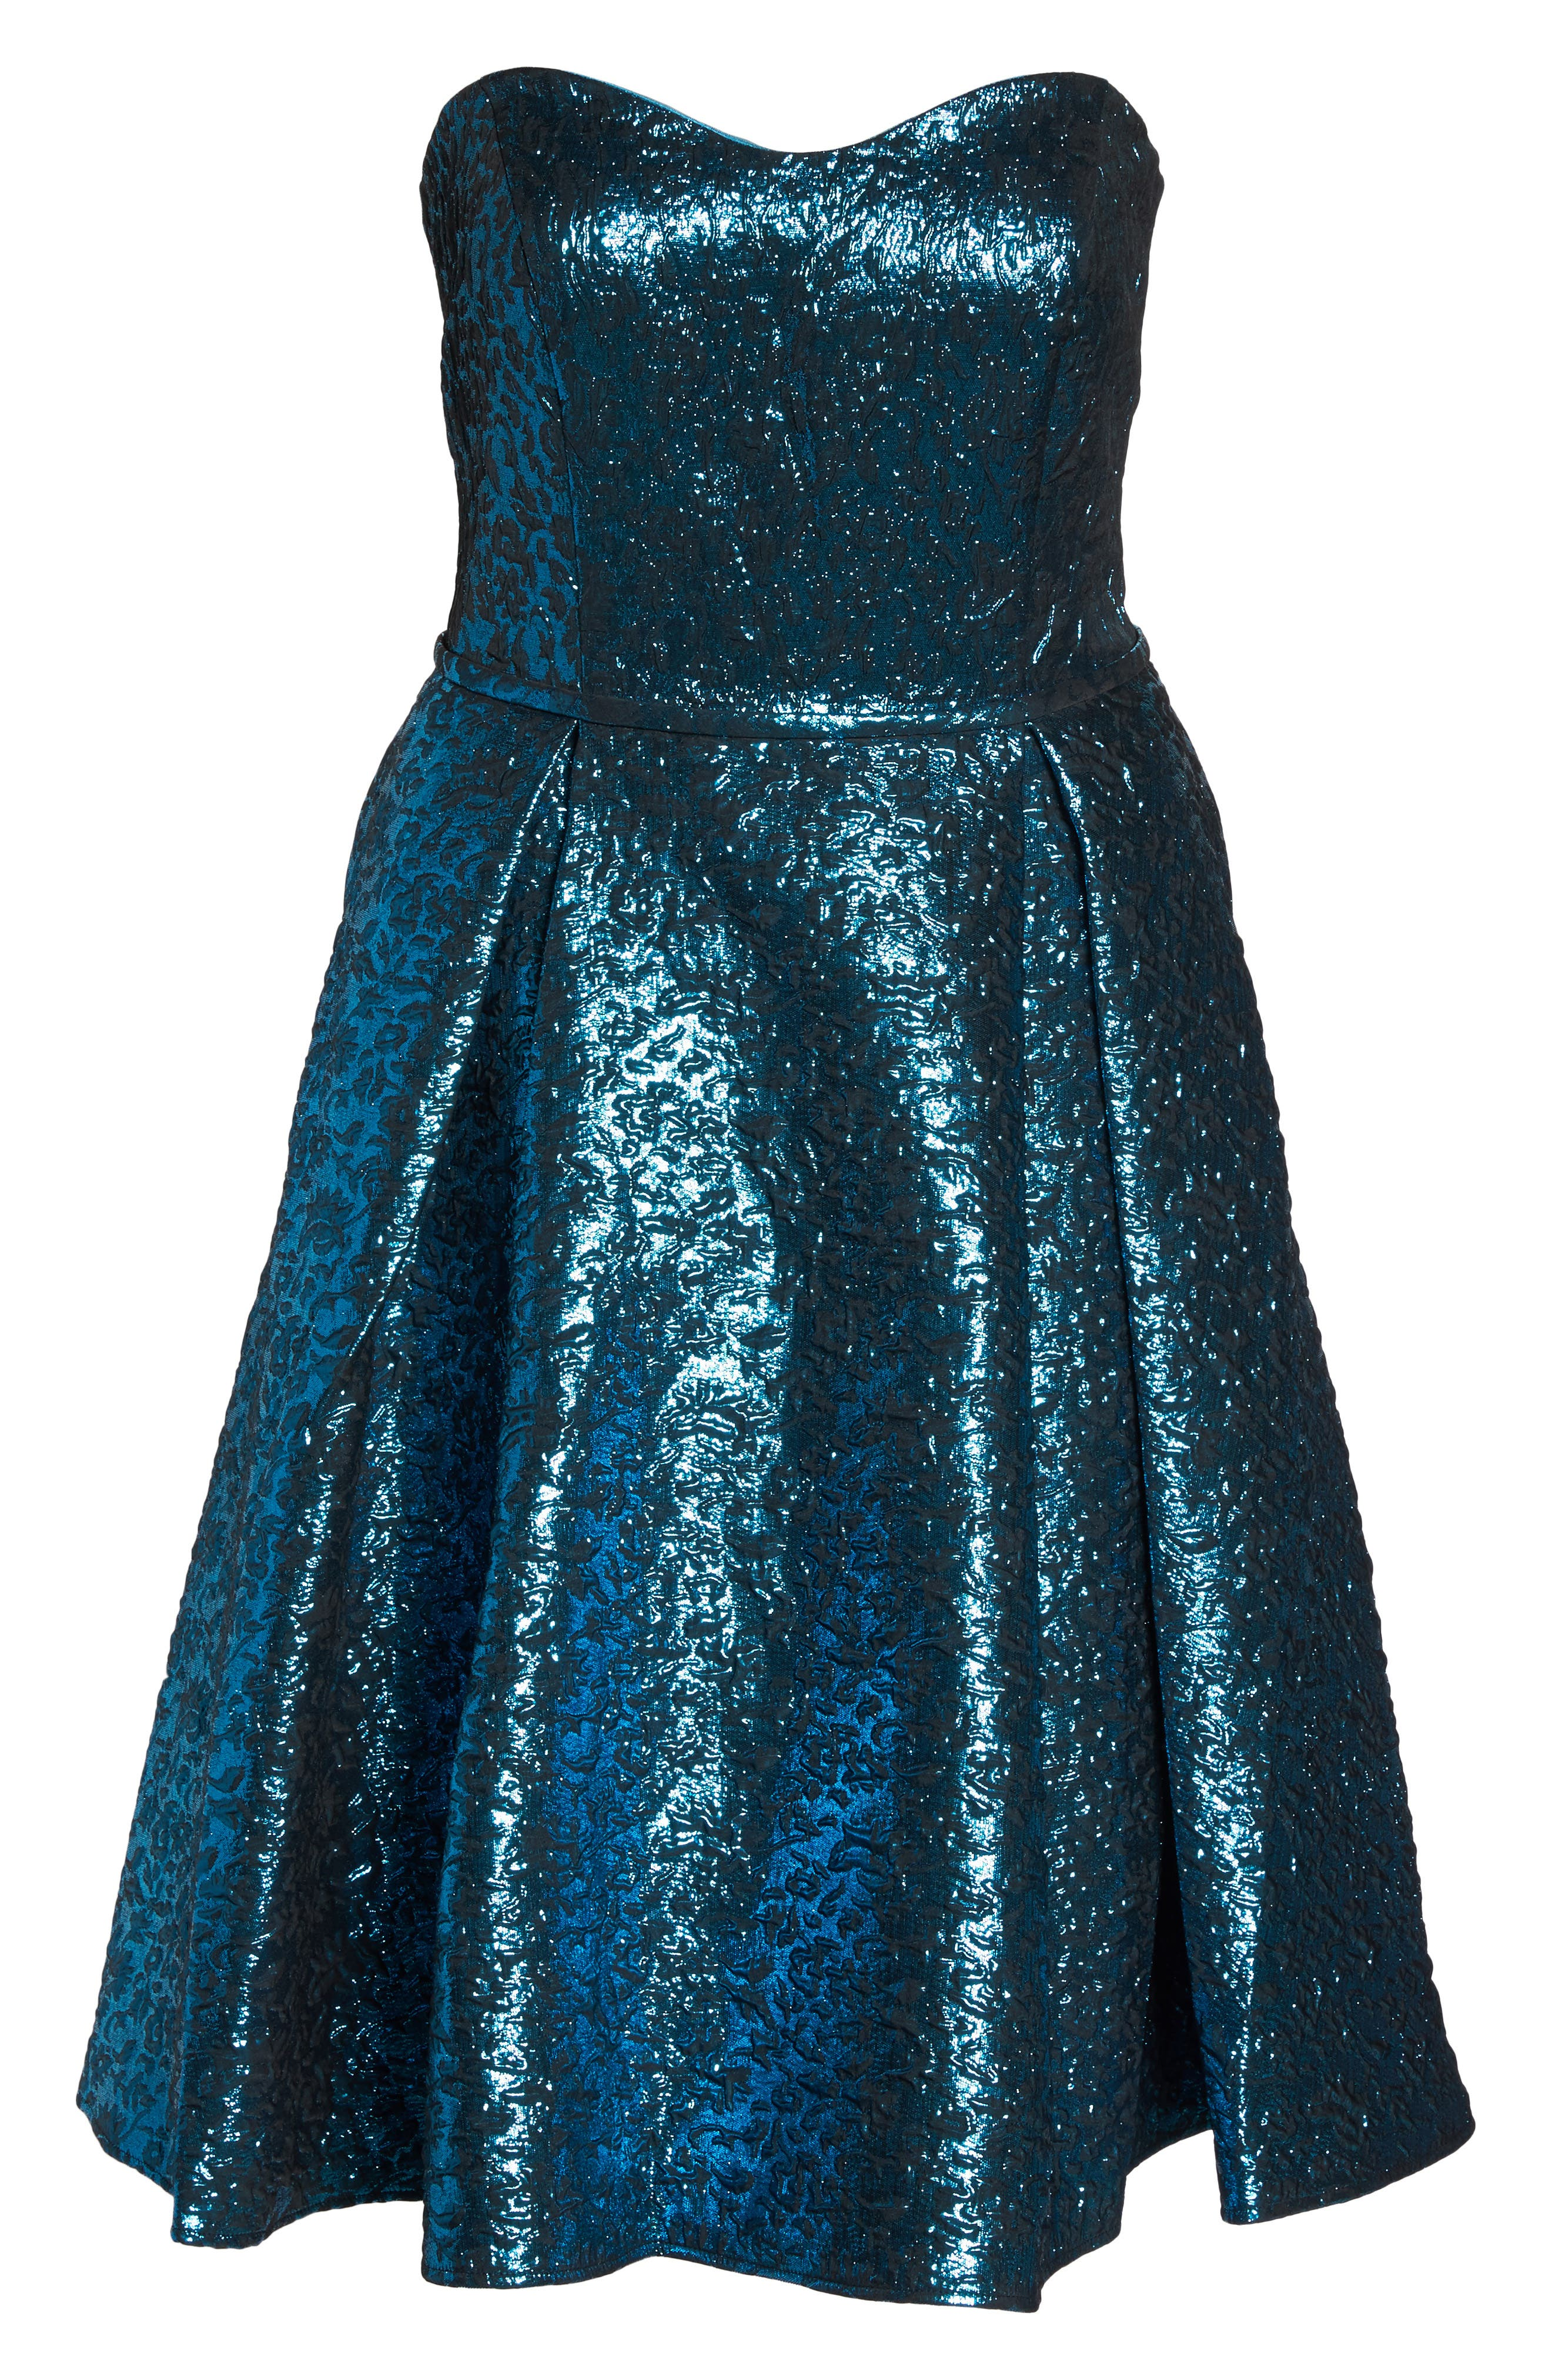 MAC DUGGAL, Metallic Fit & Flare Dress, Alternate thumbnail 6, color, TURQUOISE